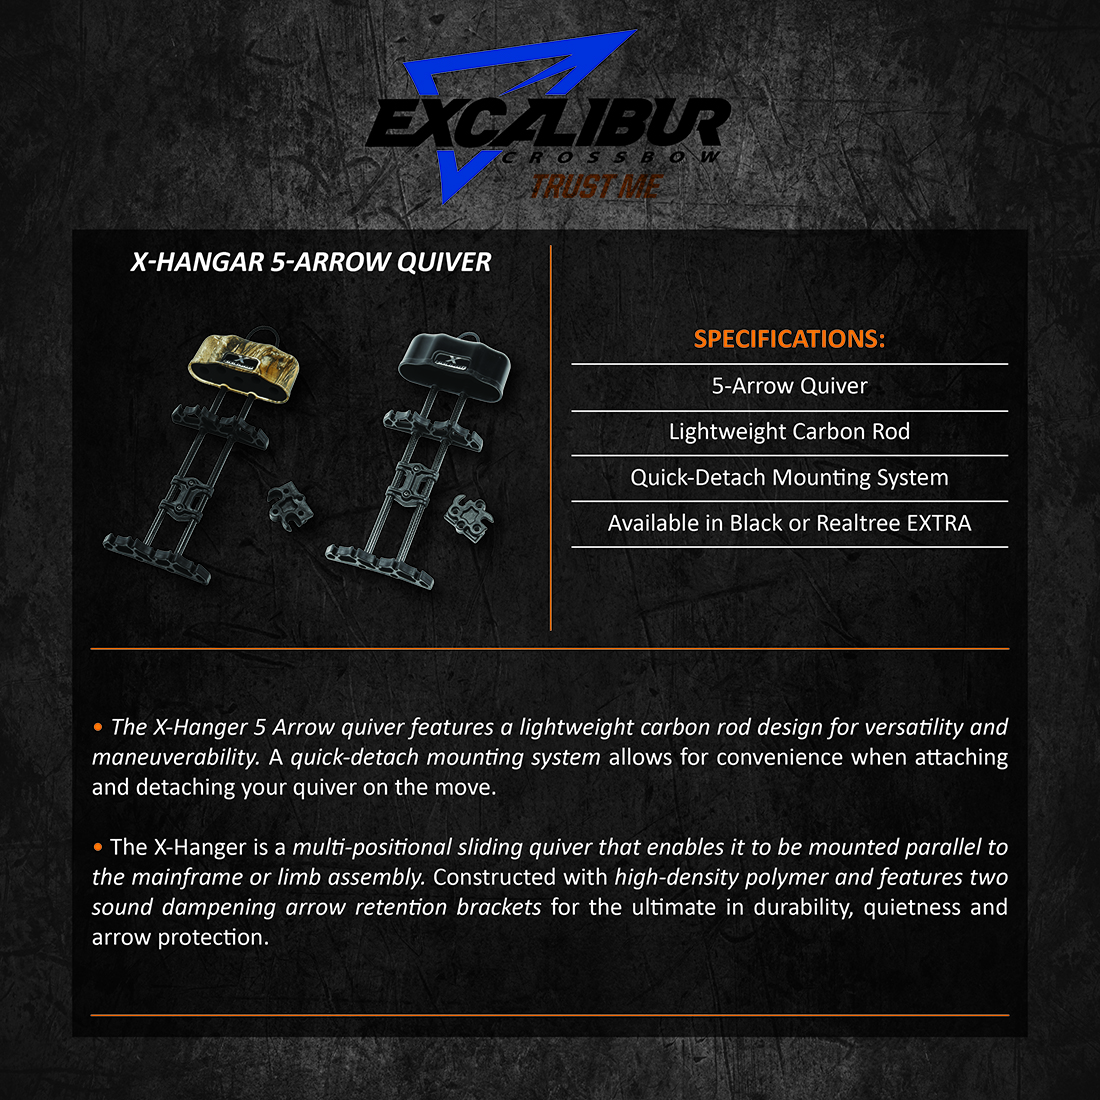 Excalibur_XHangar_5Arrow_Quiver_Product_Description